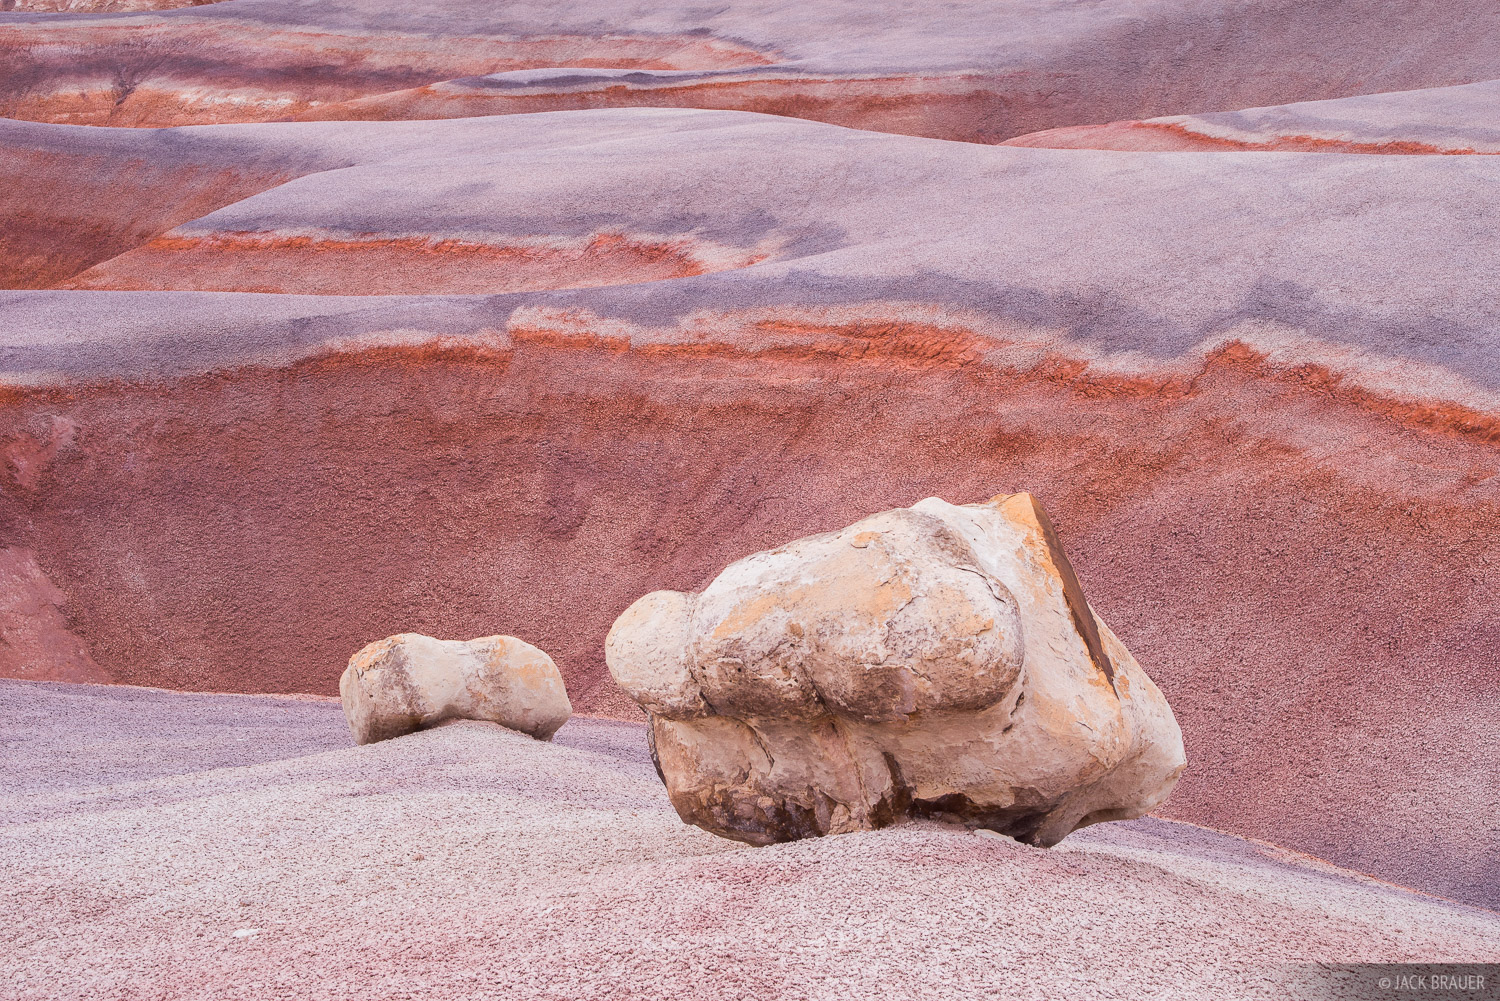 Bentonite,San Rafael Swell,Utah, photo